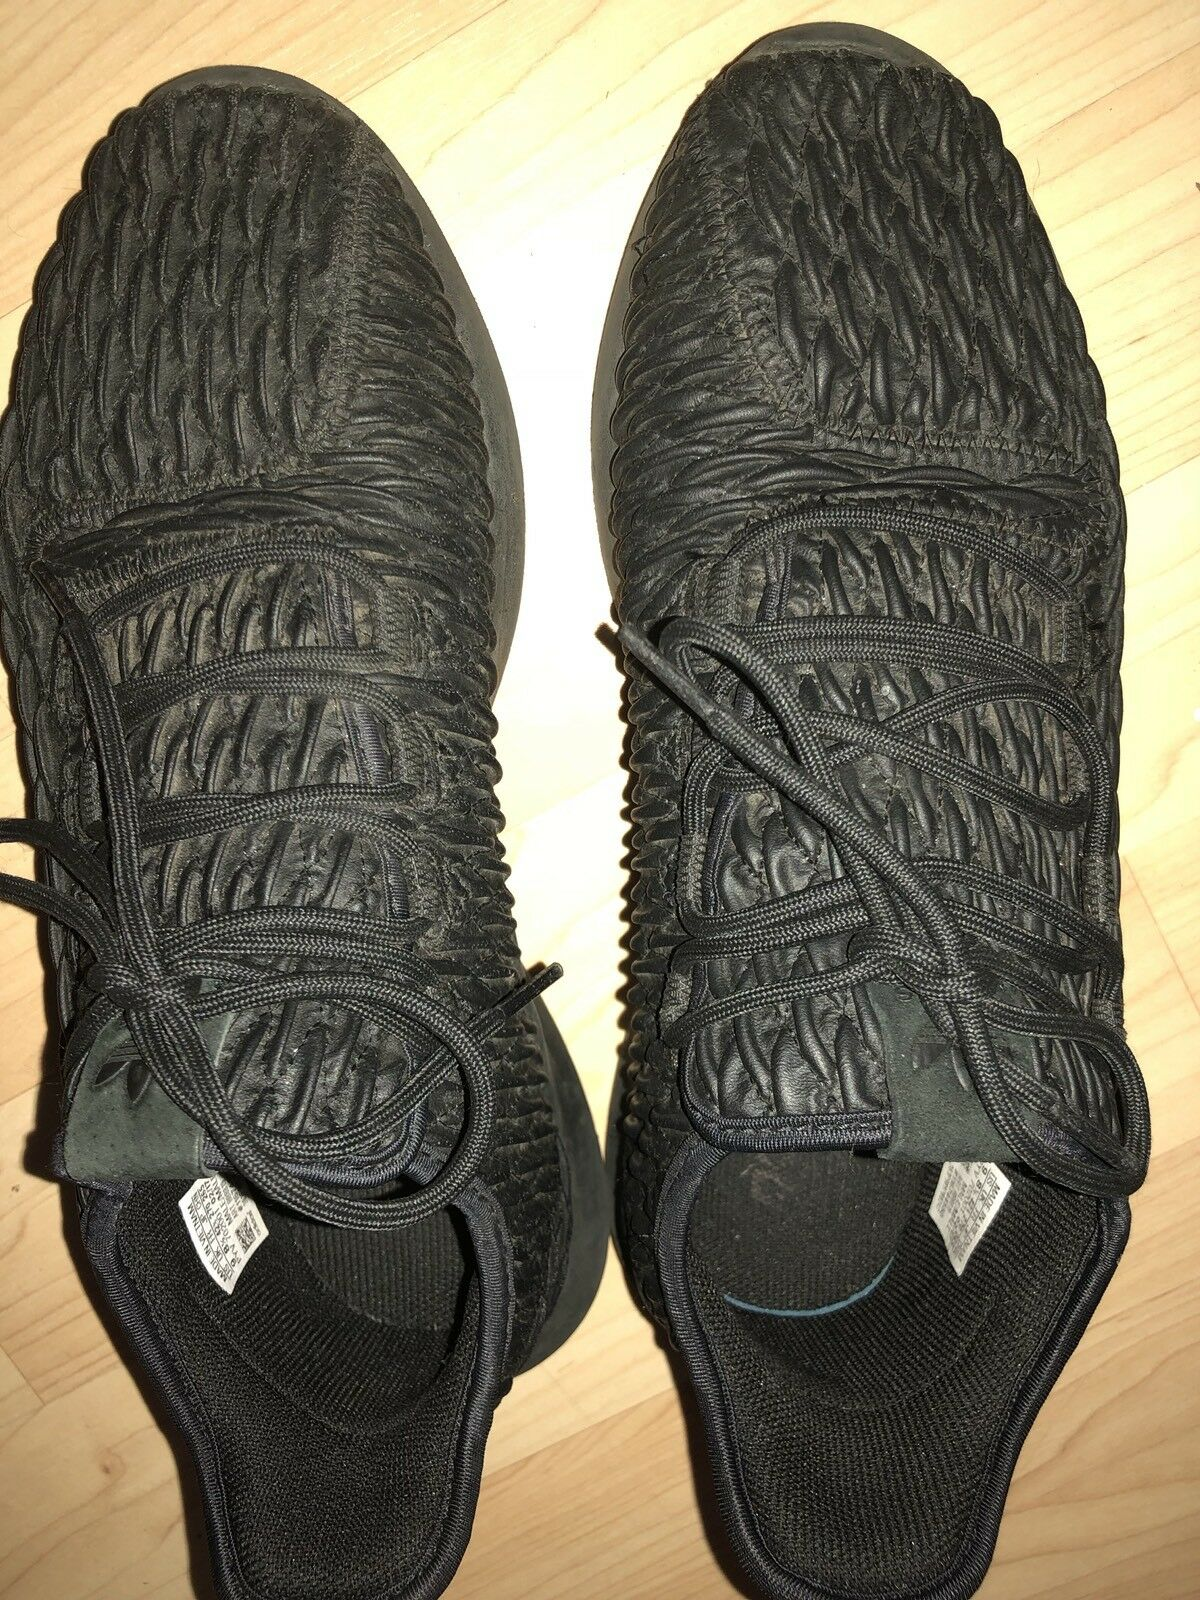 adidas Tubular Black RiPPLe Athletic Running Shoes Sneakers Sz 9 Price reduction Great discount